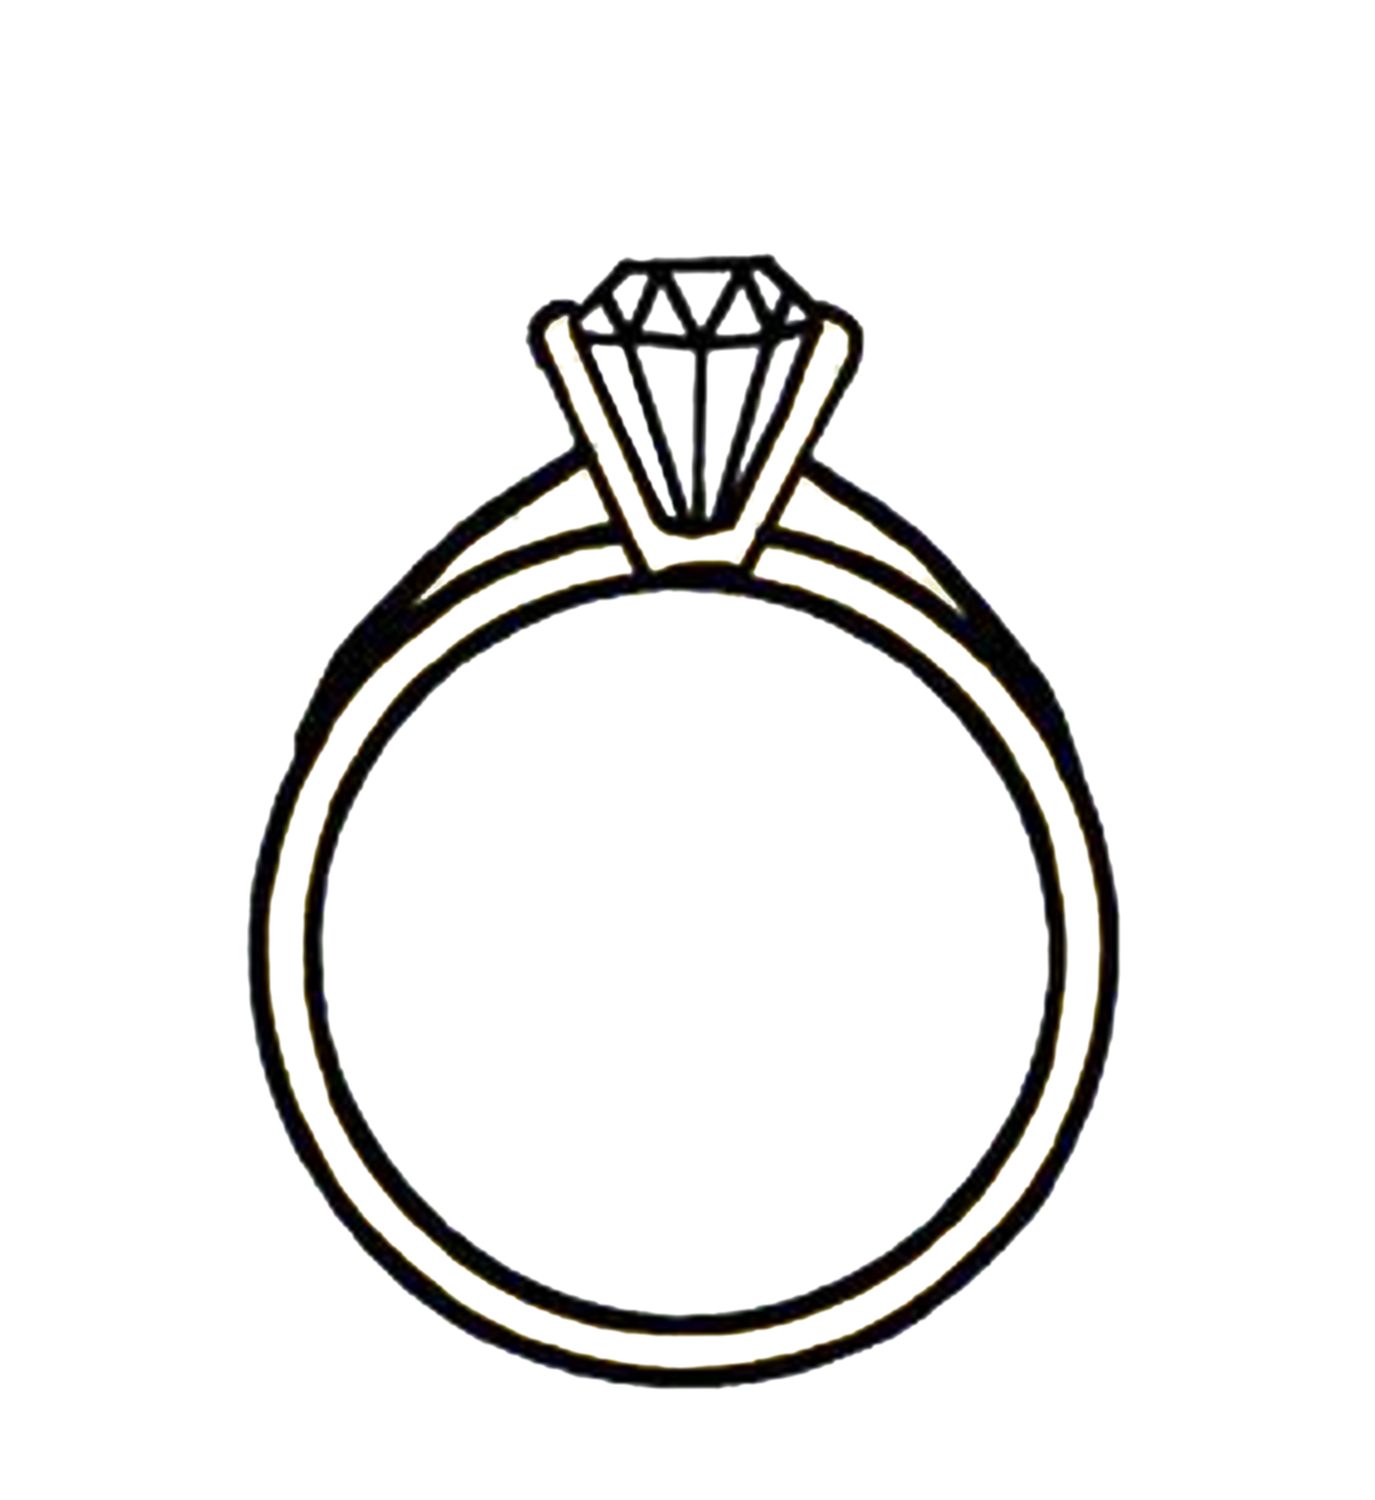 Diamond ring clipart free images jpeg